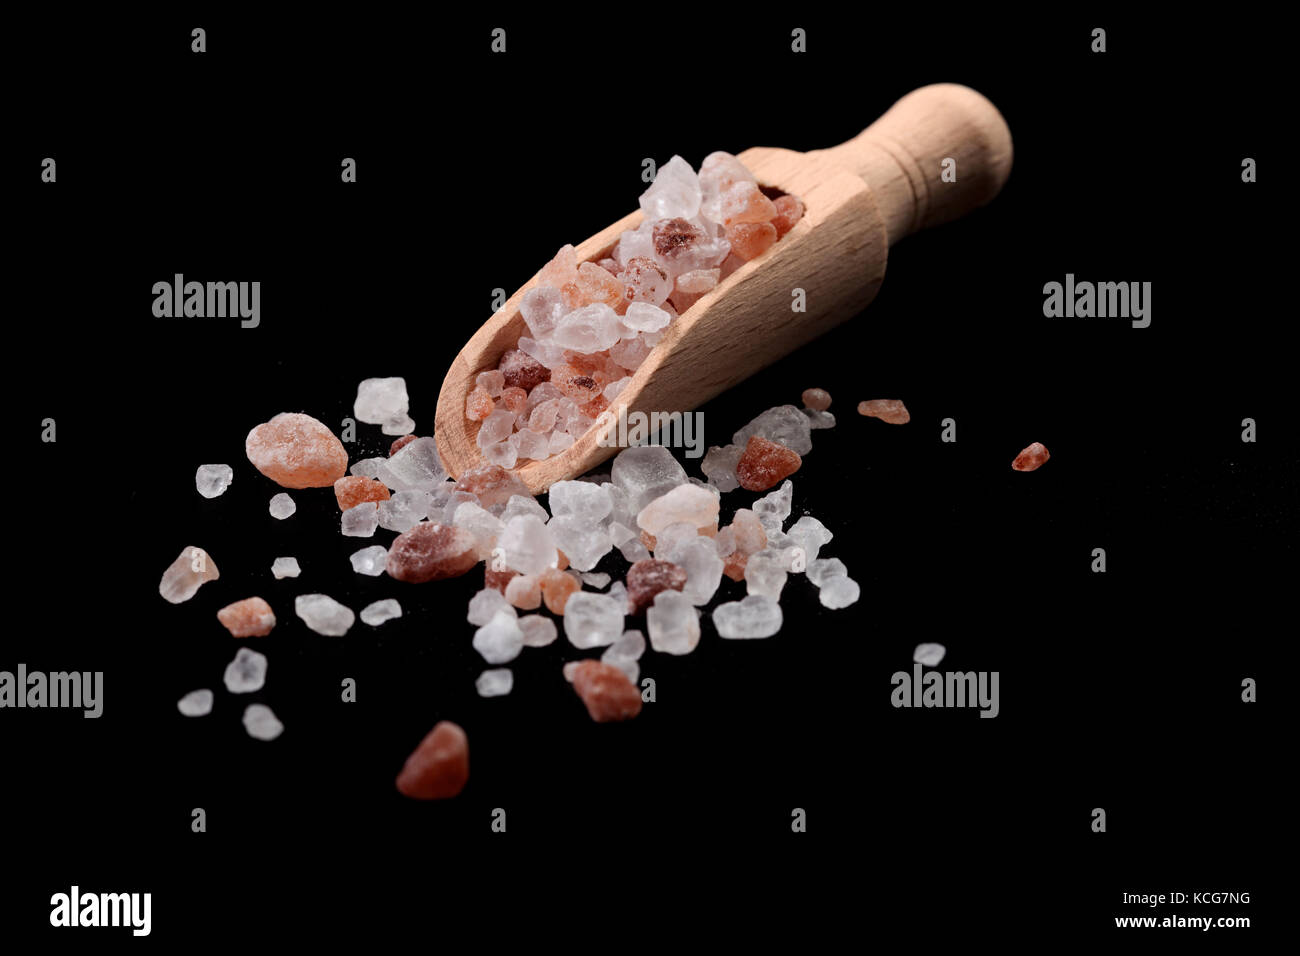 Wood Spice Spoon With Himalayan Salt on Black Background - Stock Image